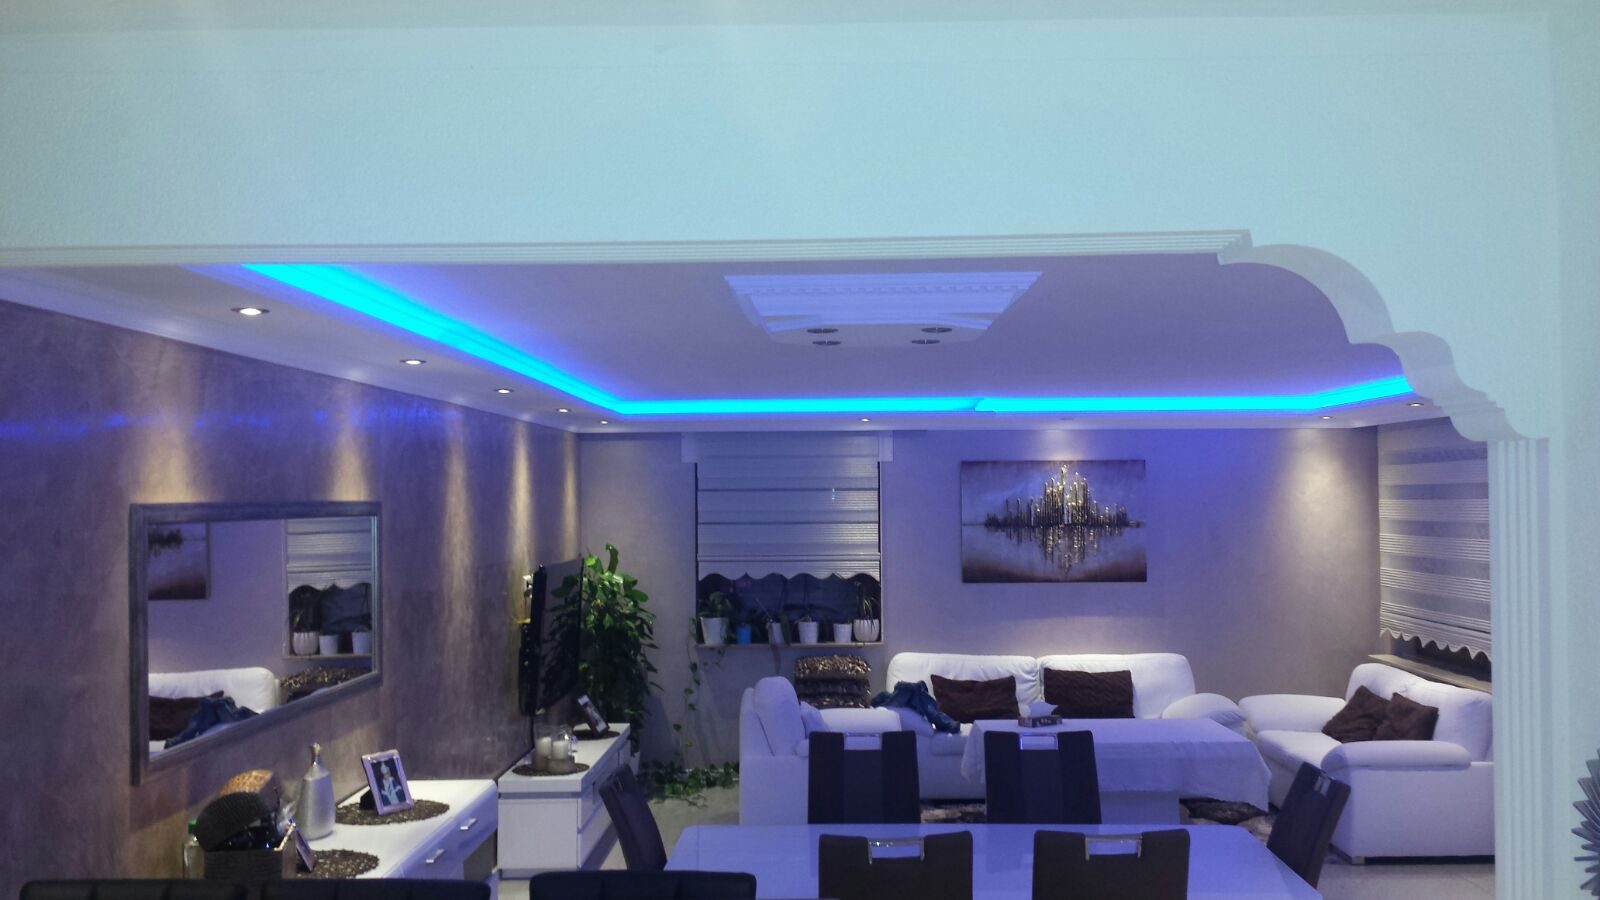 indirekte beleuchtung led lichtprofile wand decken beleuchtung 1 meter bl 10 aydin stuck. Black Bedroom Furniture Sets. Home Design Ideas